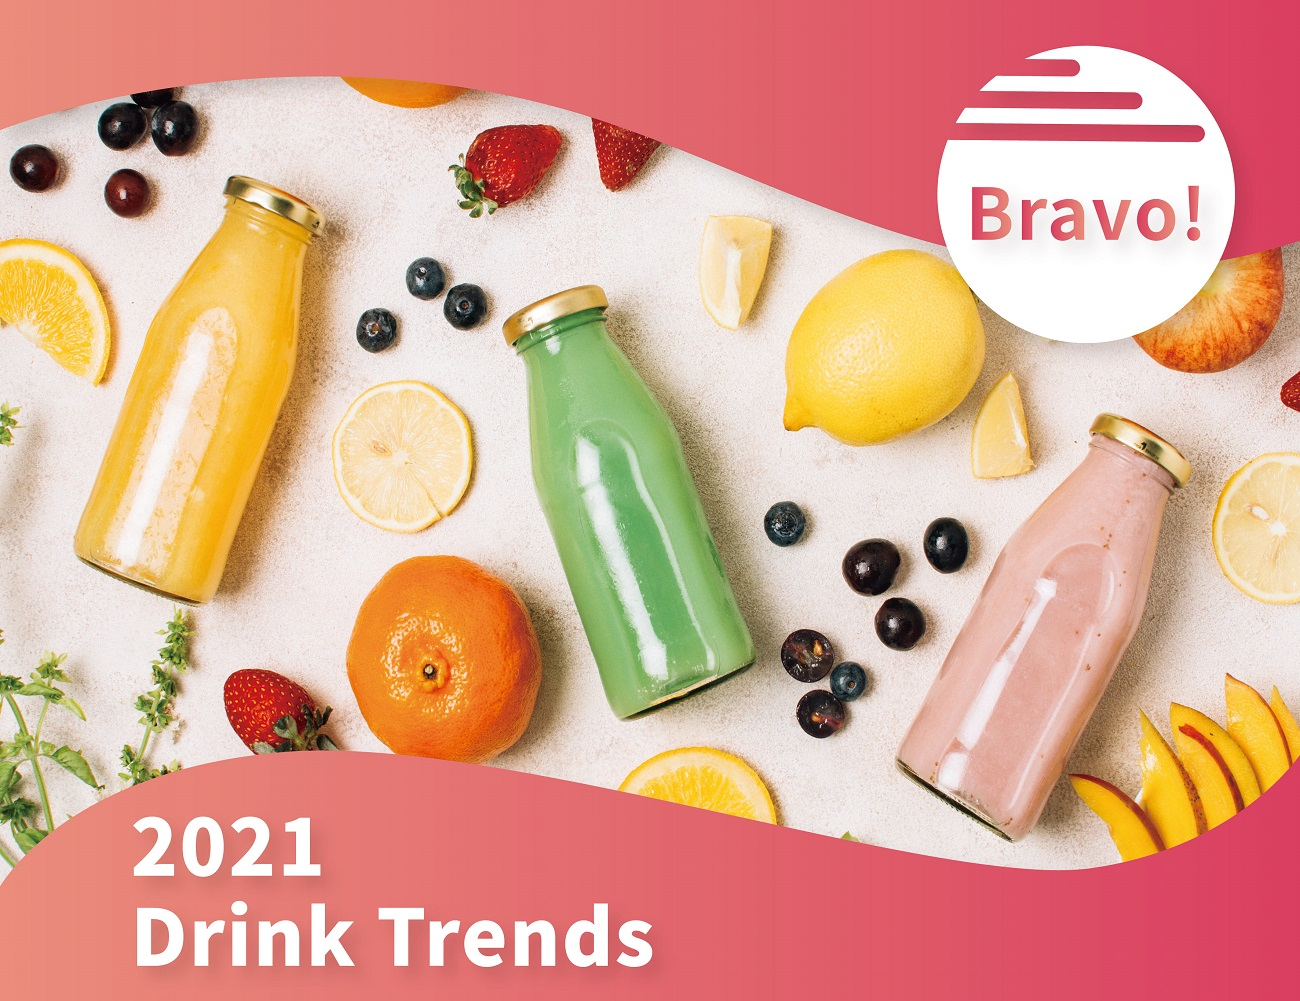 2021 Global Drink Trends!